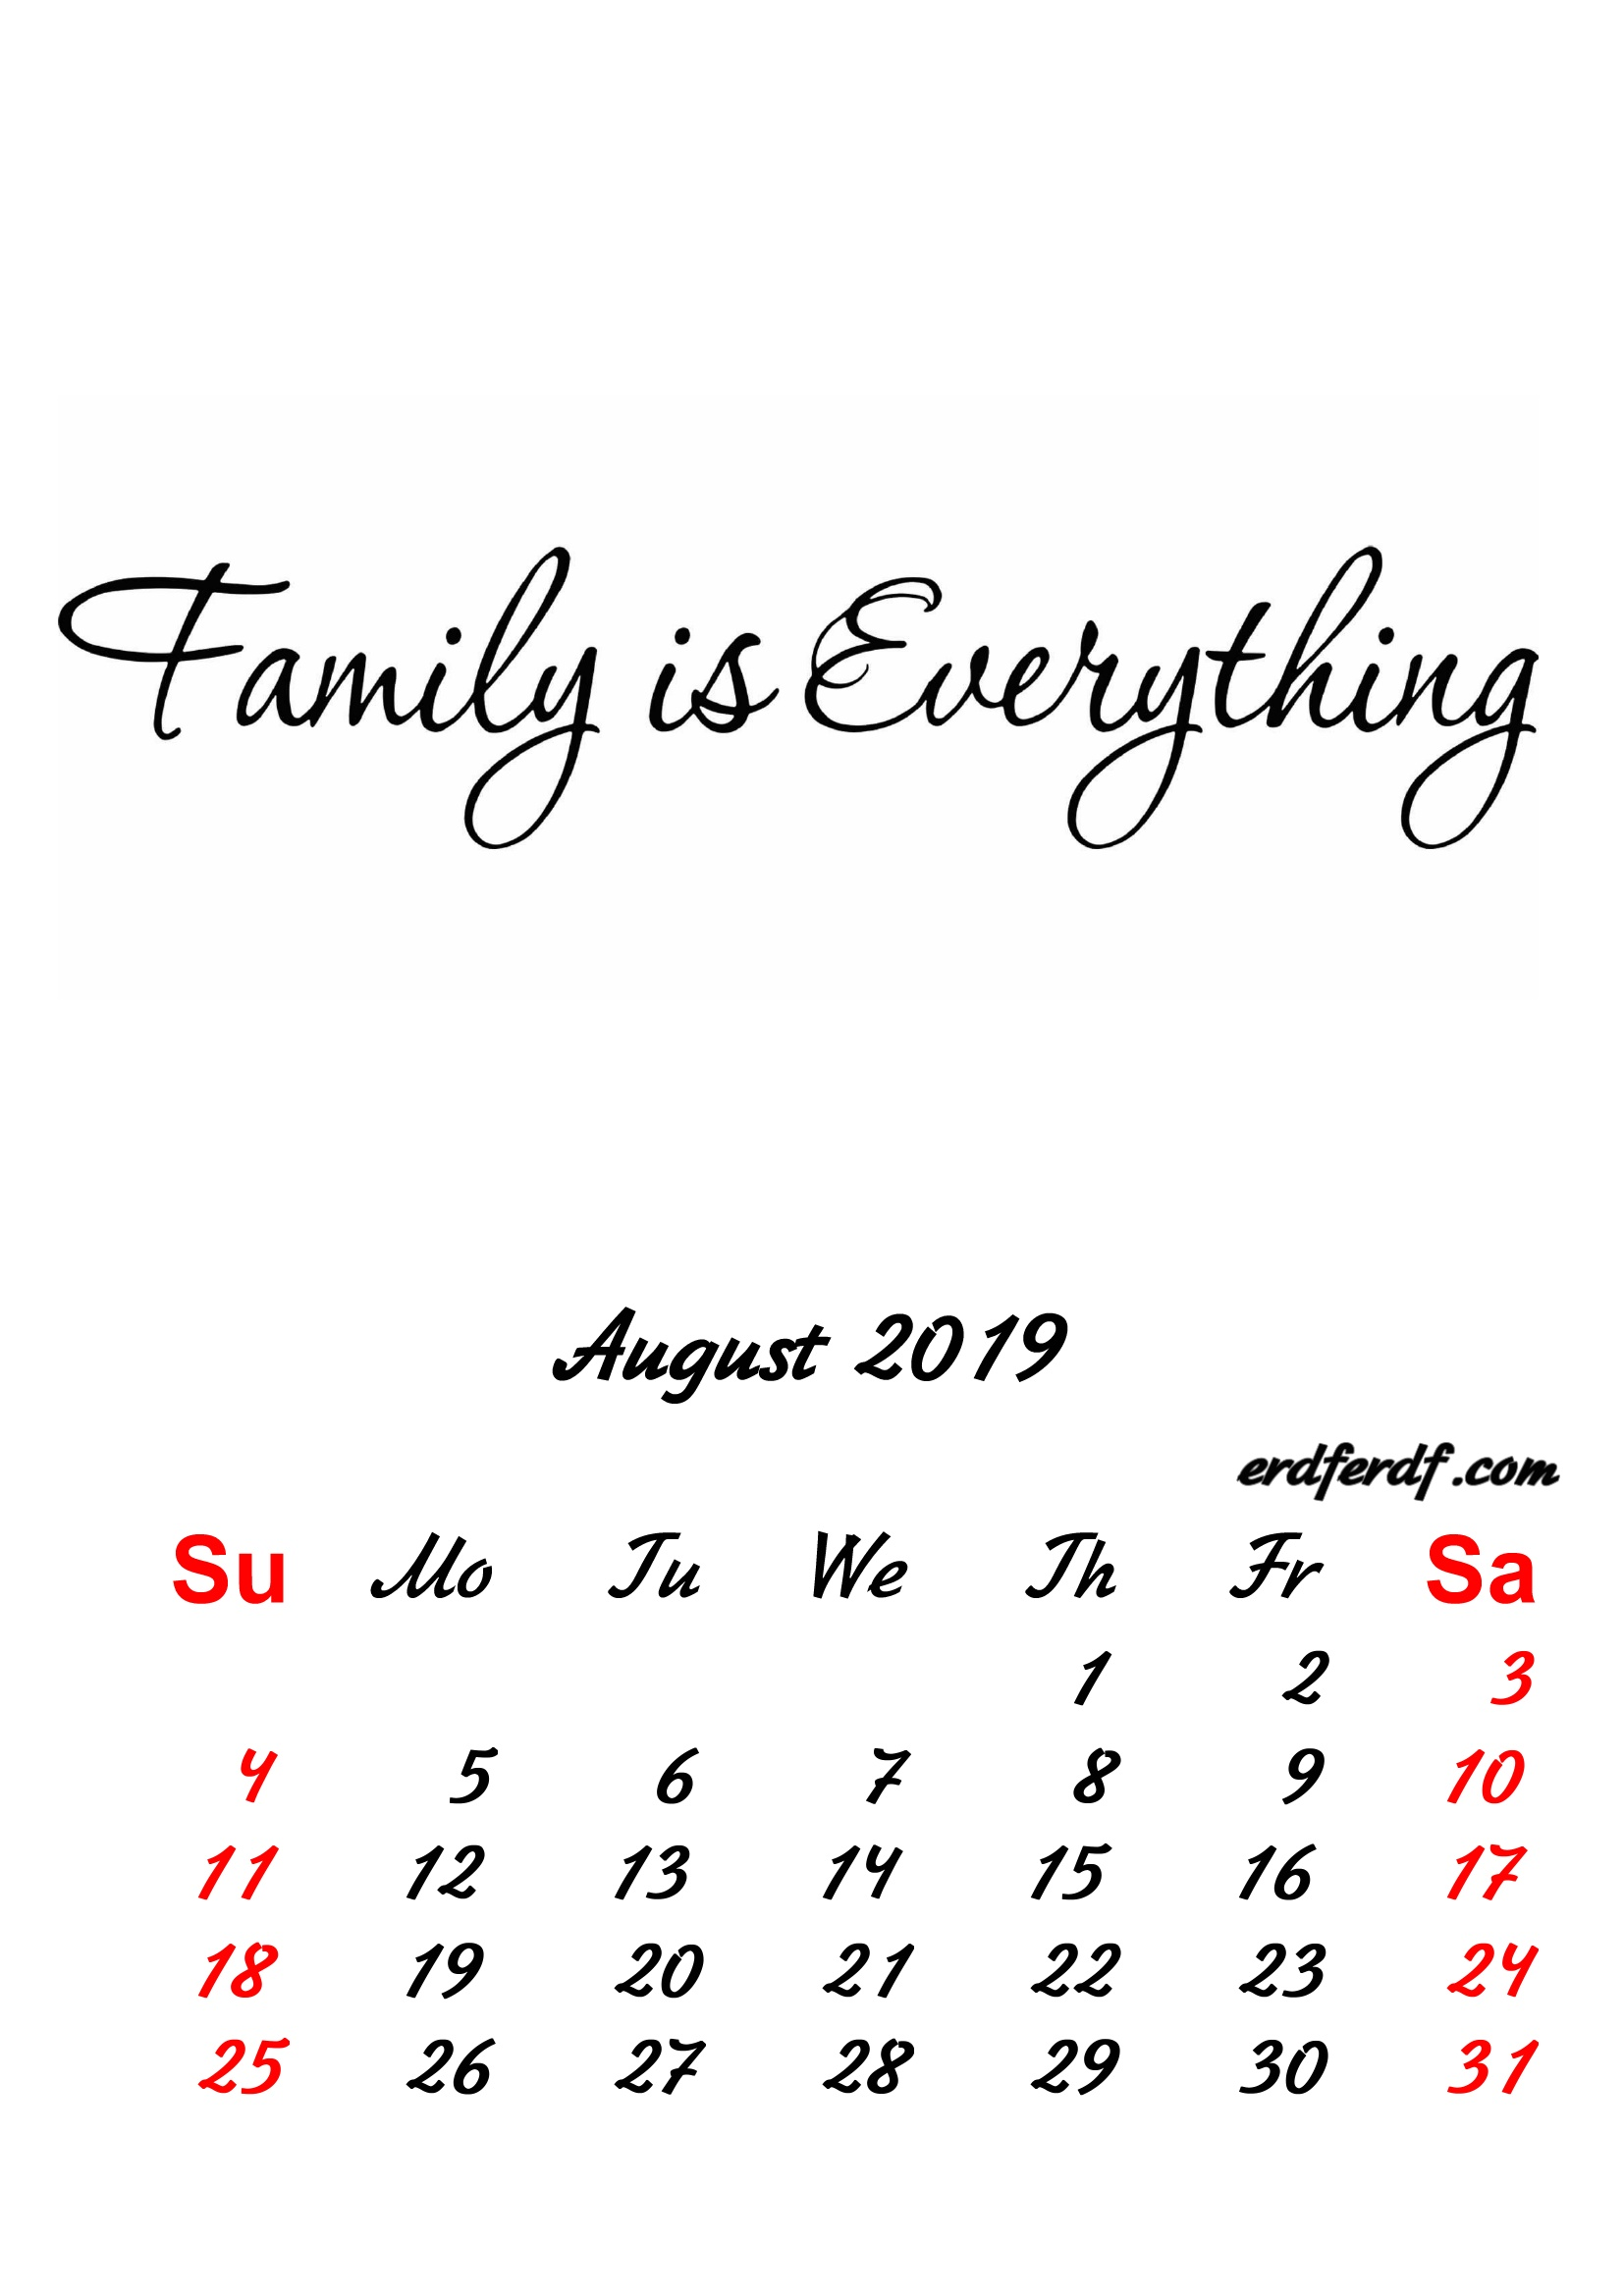 8 August 2019 Inspirational Quotes Pprintable Calendar